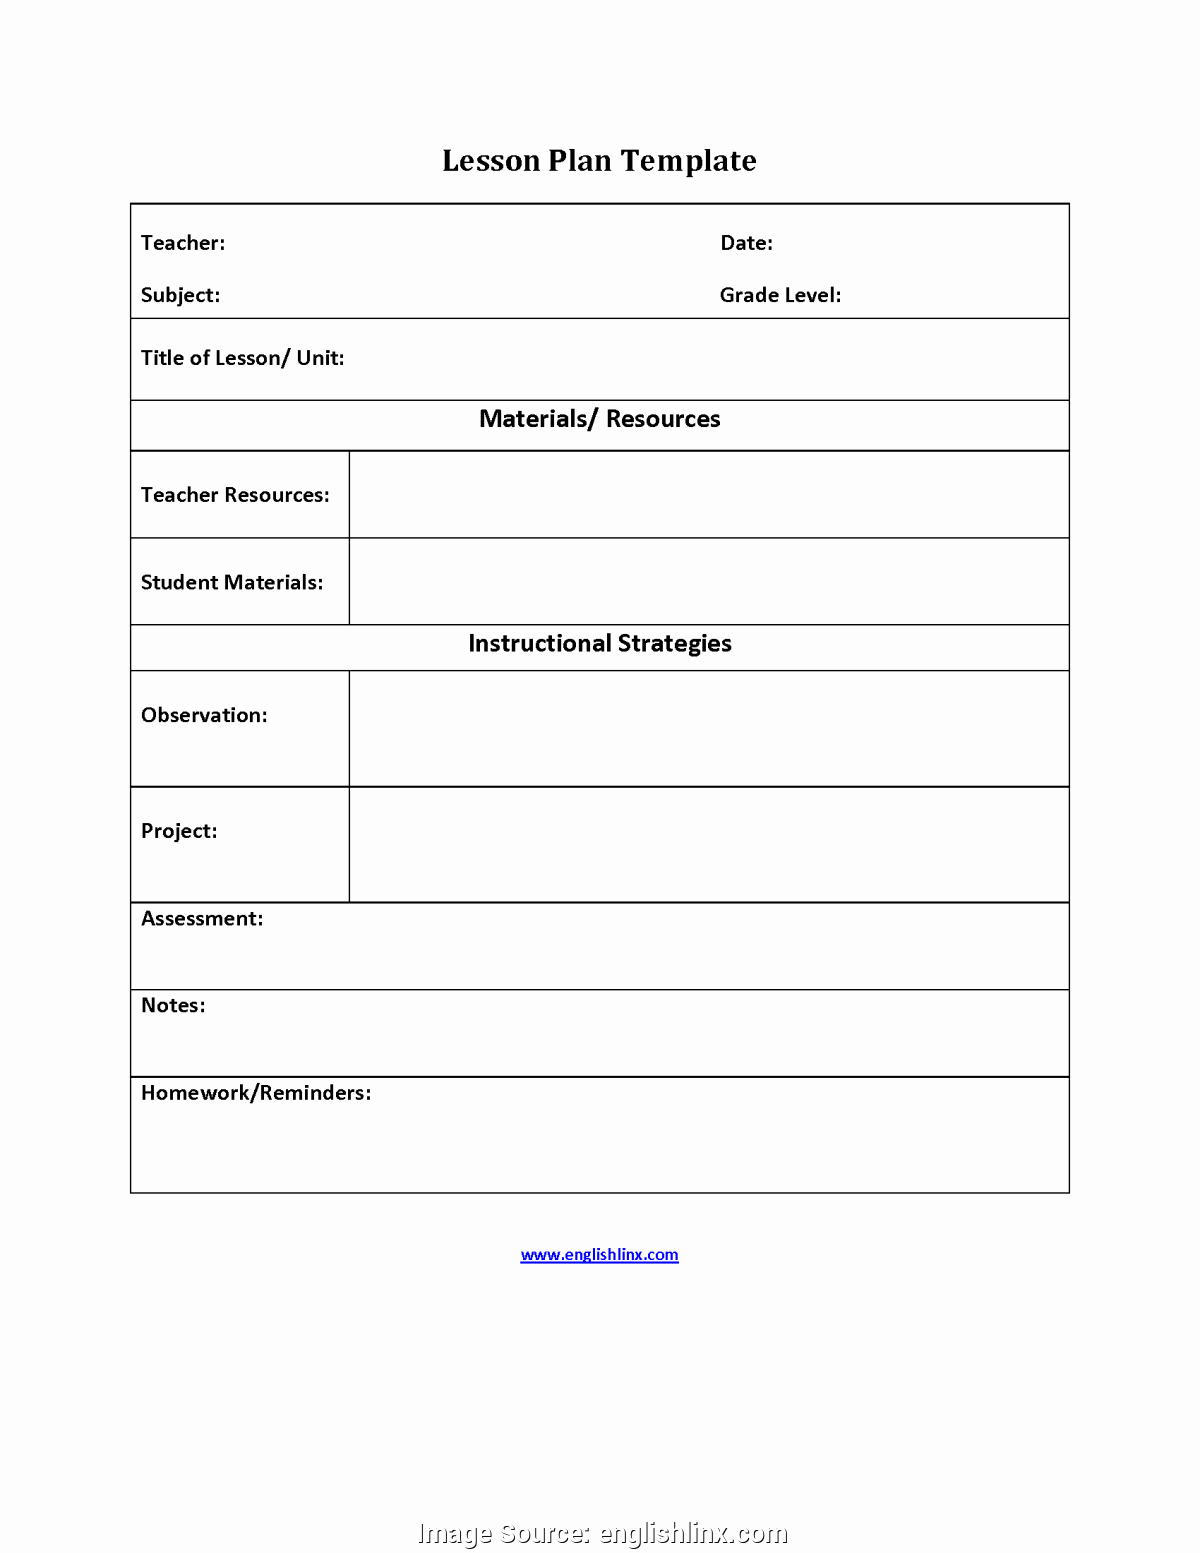 Tutor Lesson Plan Template Luxury Simple Munity Helpers Doctor Information